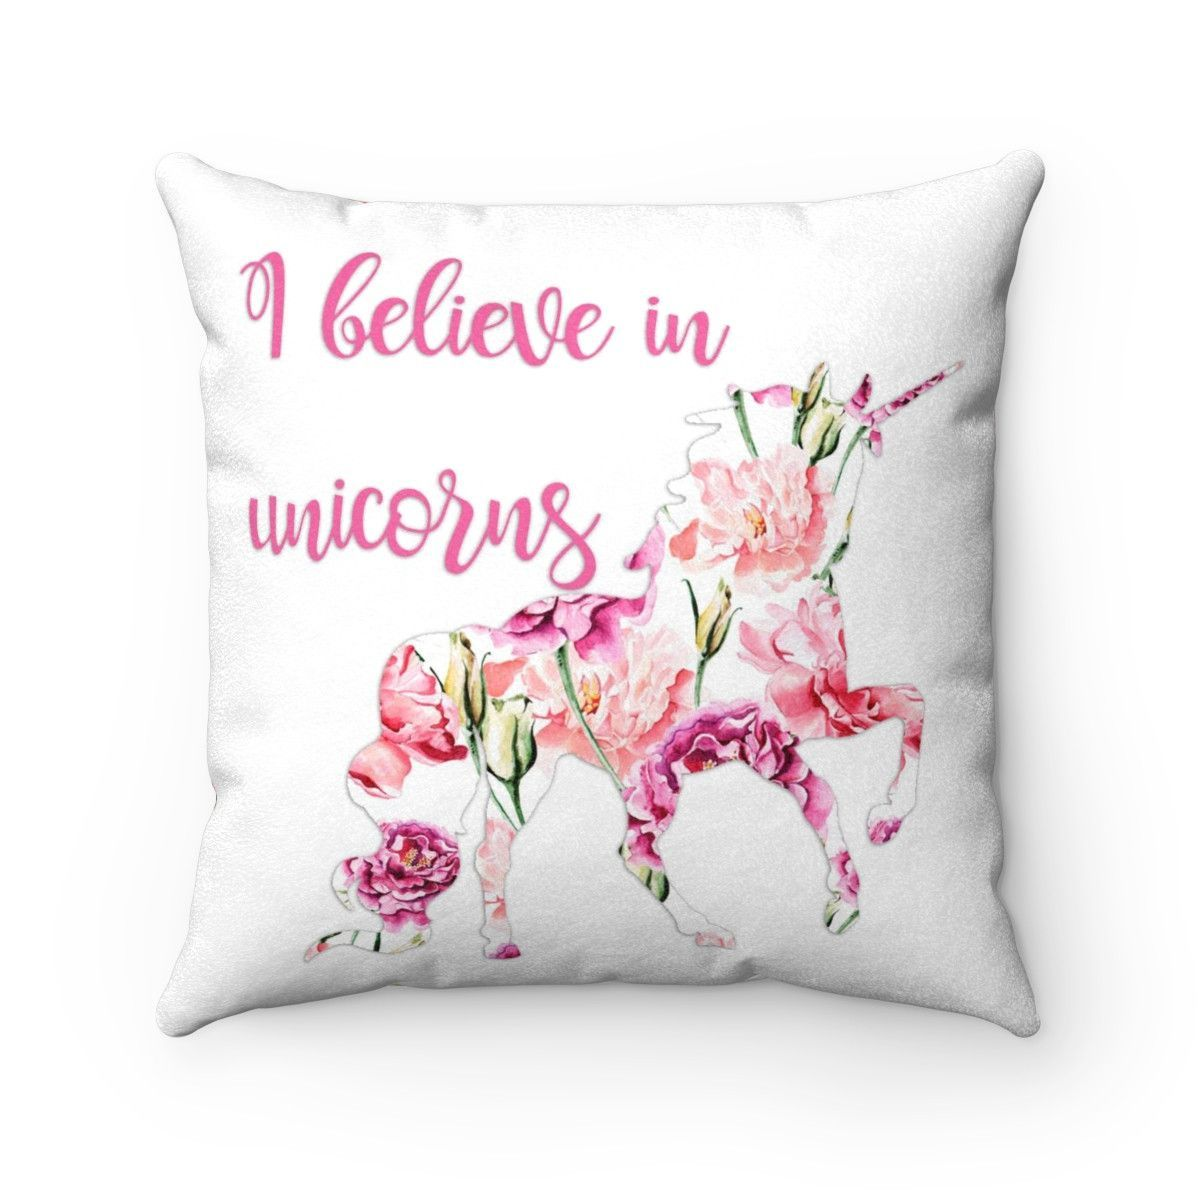 I believe in unicorns faux suede square pillow pink rose throw